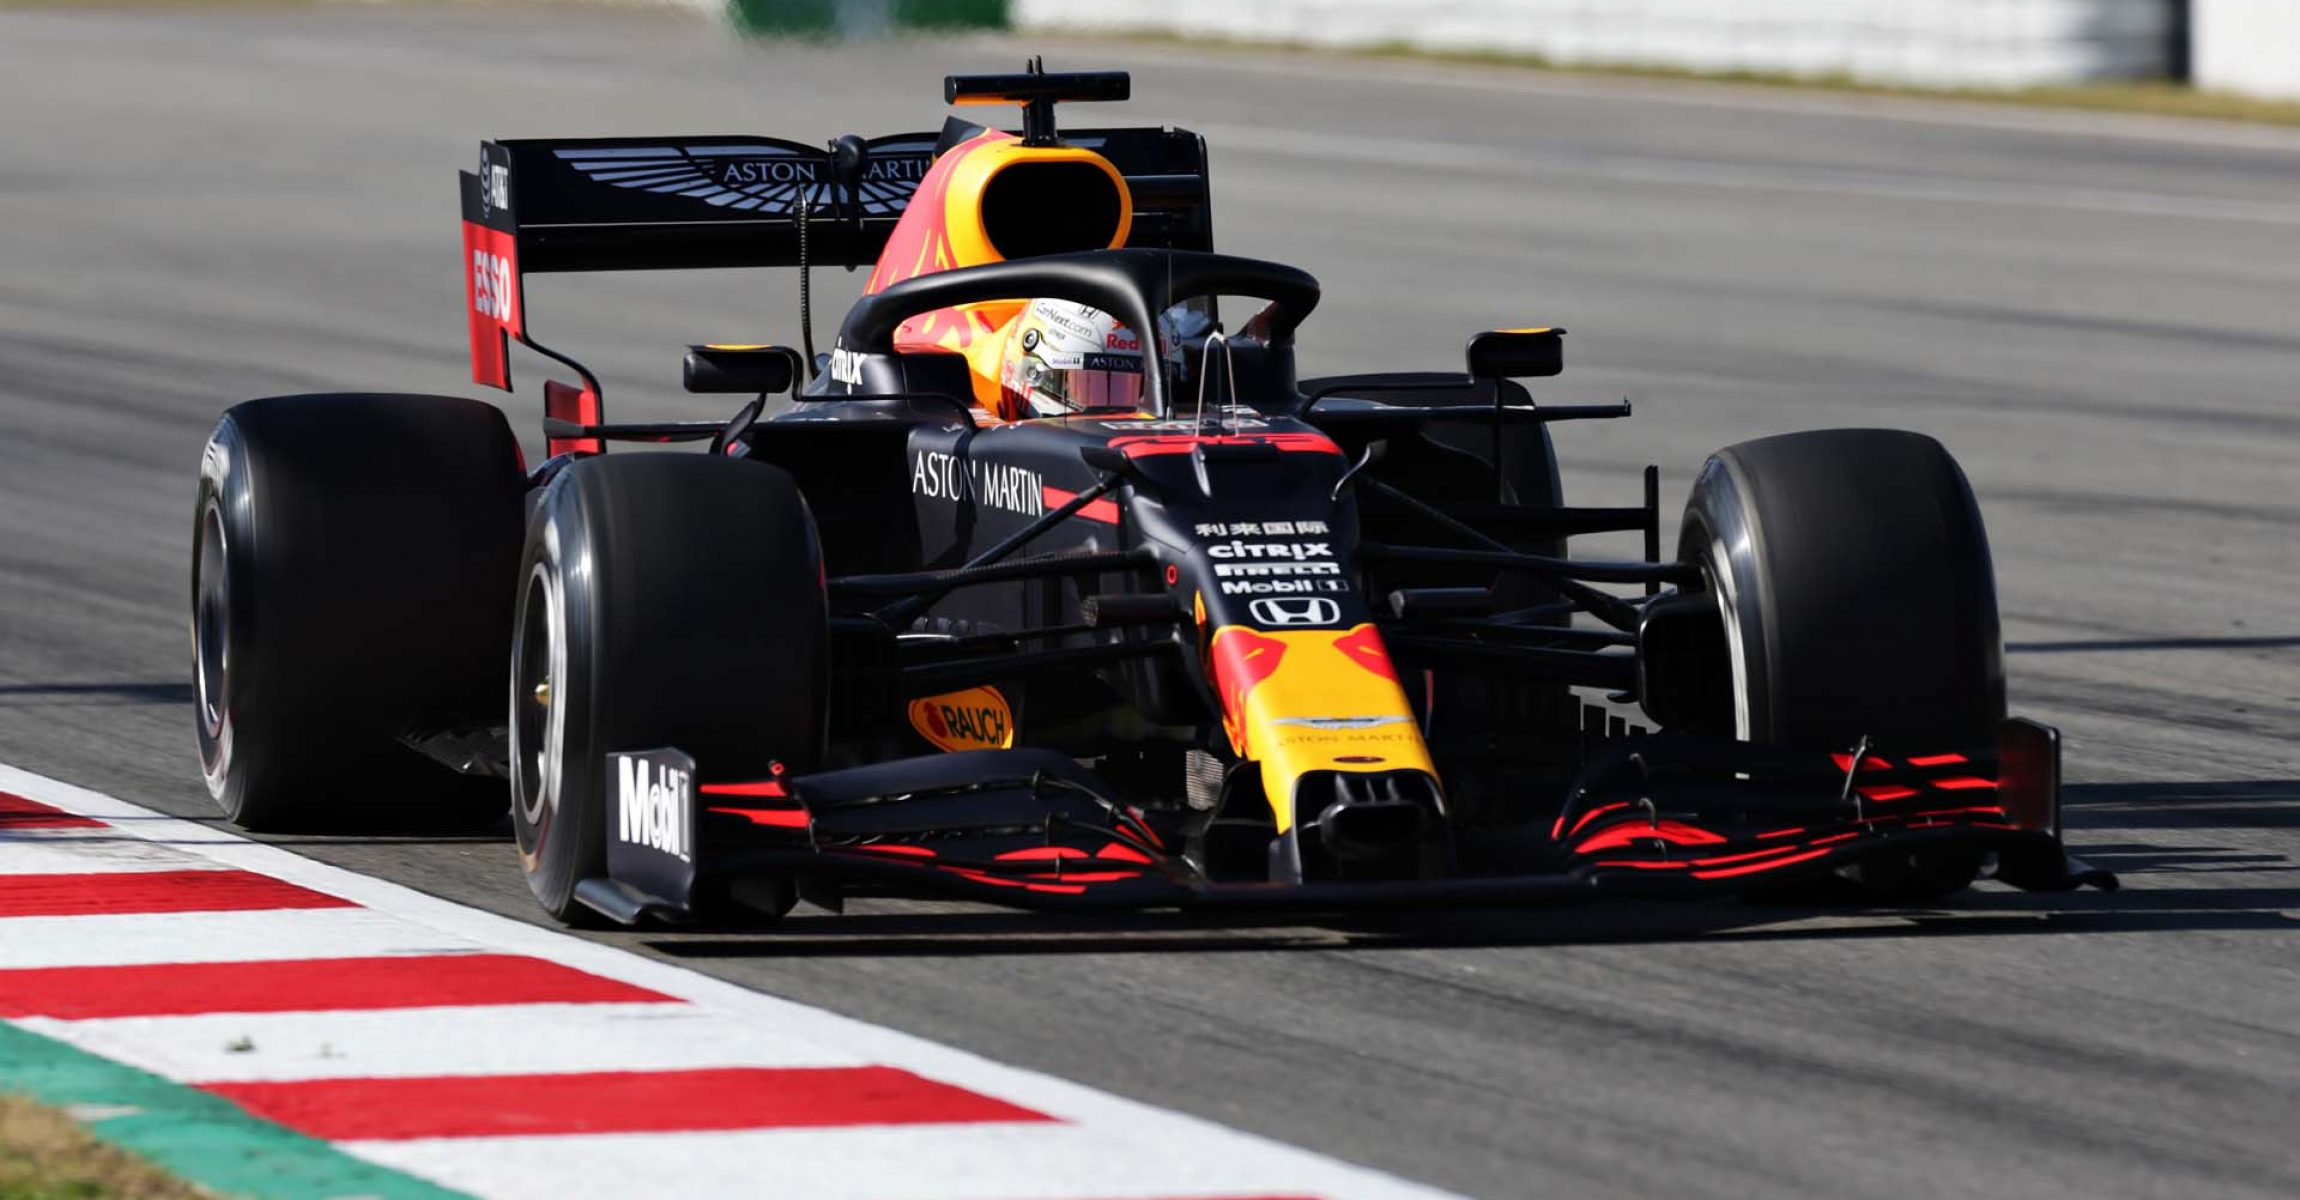 BARCELONA, SPAIN - FEBRUARY 19: Max Verstappen of the Netherlands driving the (33) Aston Martin Red Bull Racing RB16 on track during day one of Formula 1 Winter Testing at Circuit de Barcelona-Catalunya on February 19, 2020 in Barcelona, Spain. (Photo by Peter Fox/Getty Images) // Getty Images / Red Bull Content Pool // AP-235KCHBVW1W11 // Usage for editorial use only //